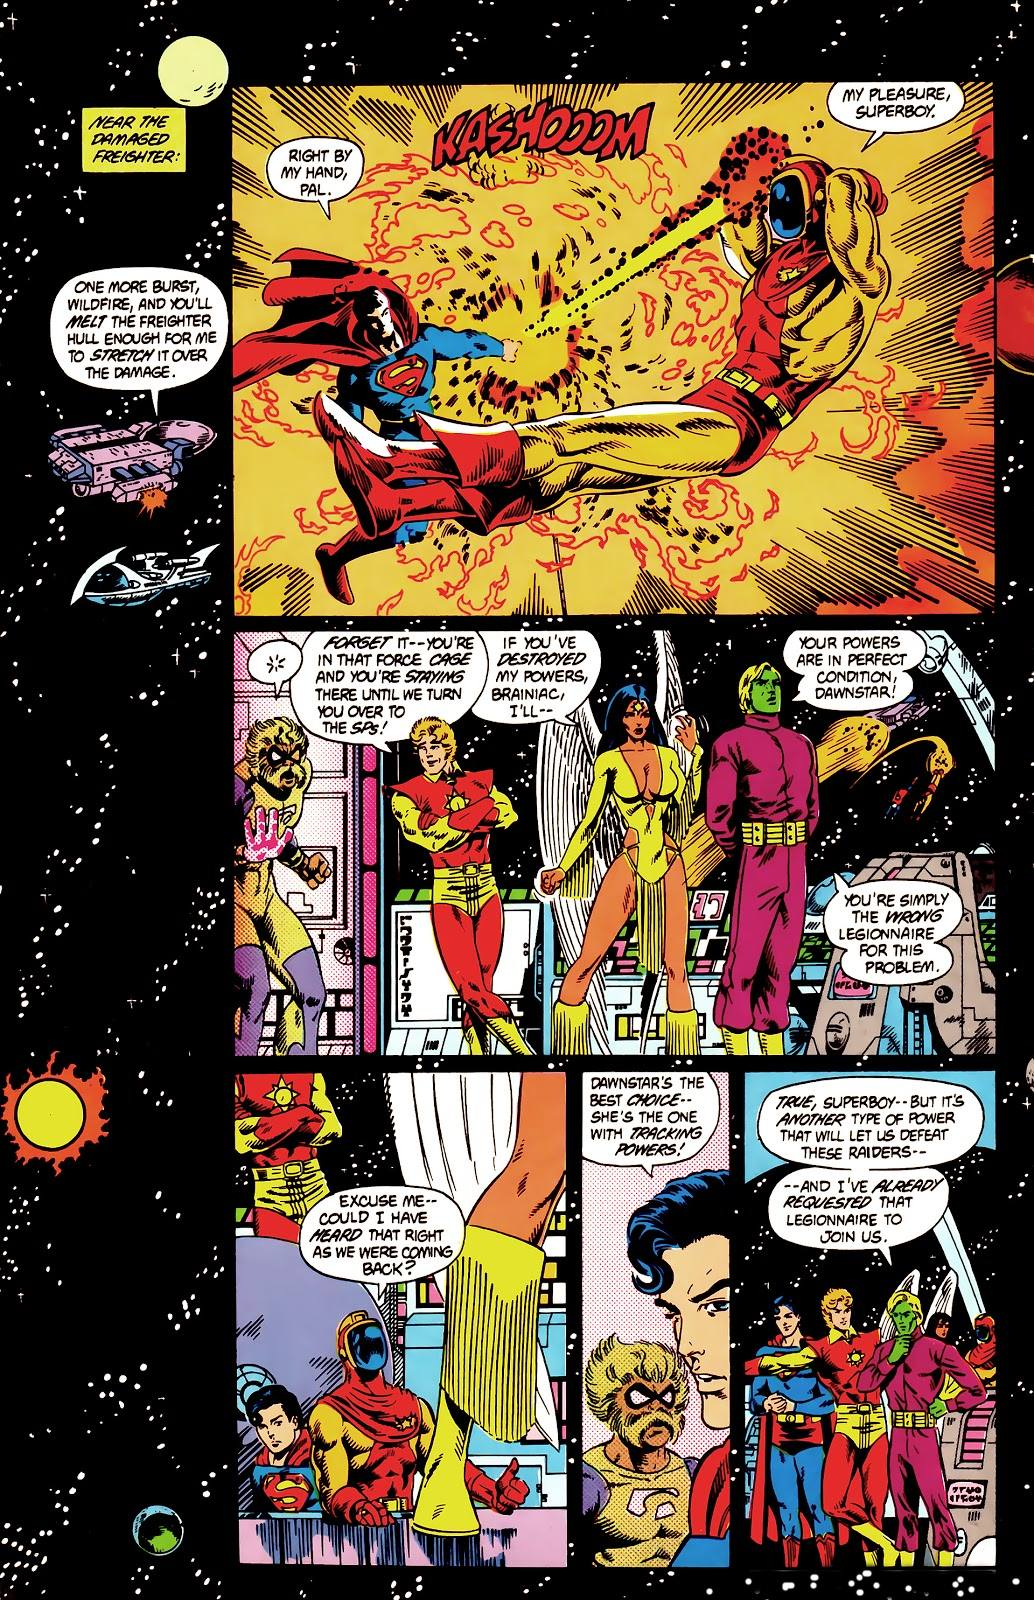 Legion of Super-Heroes The More Things Change review